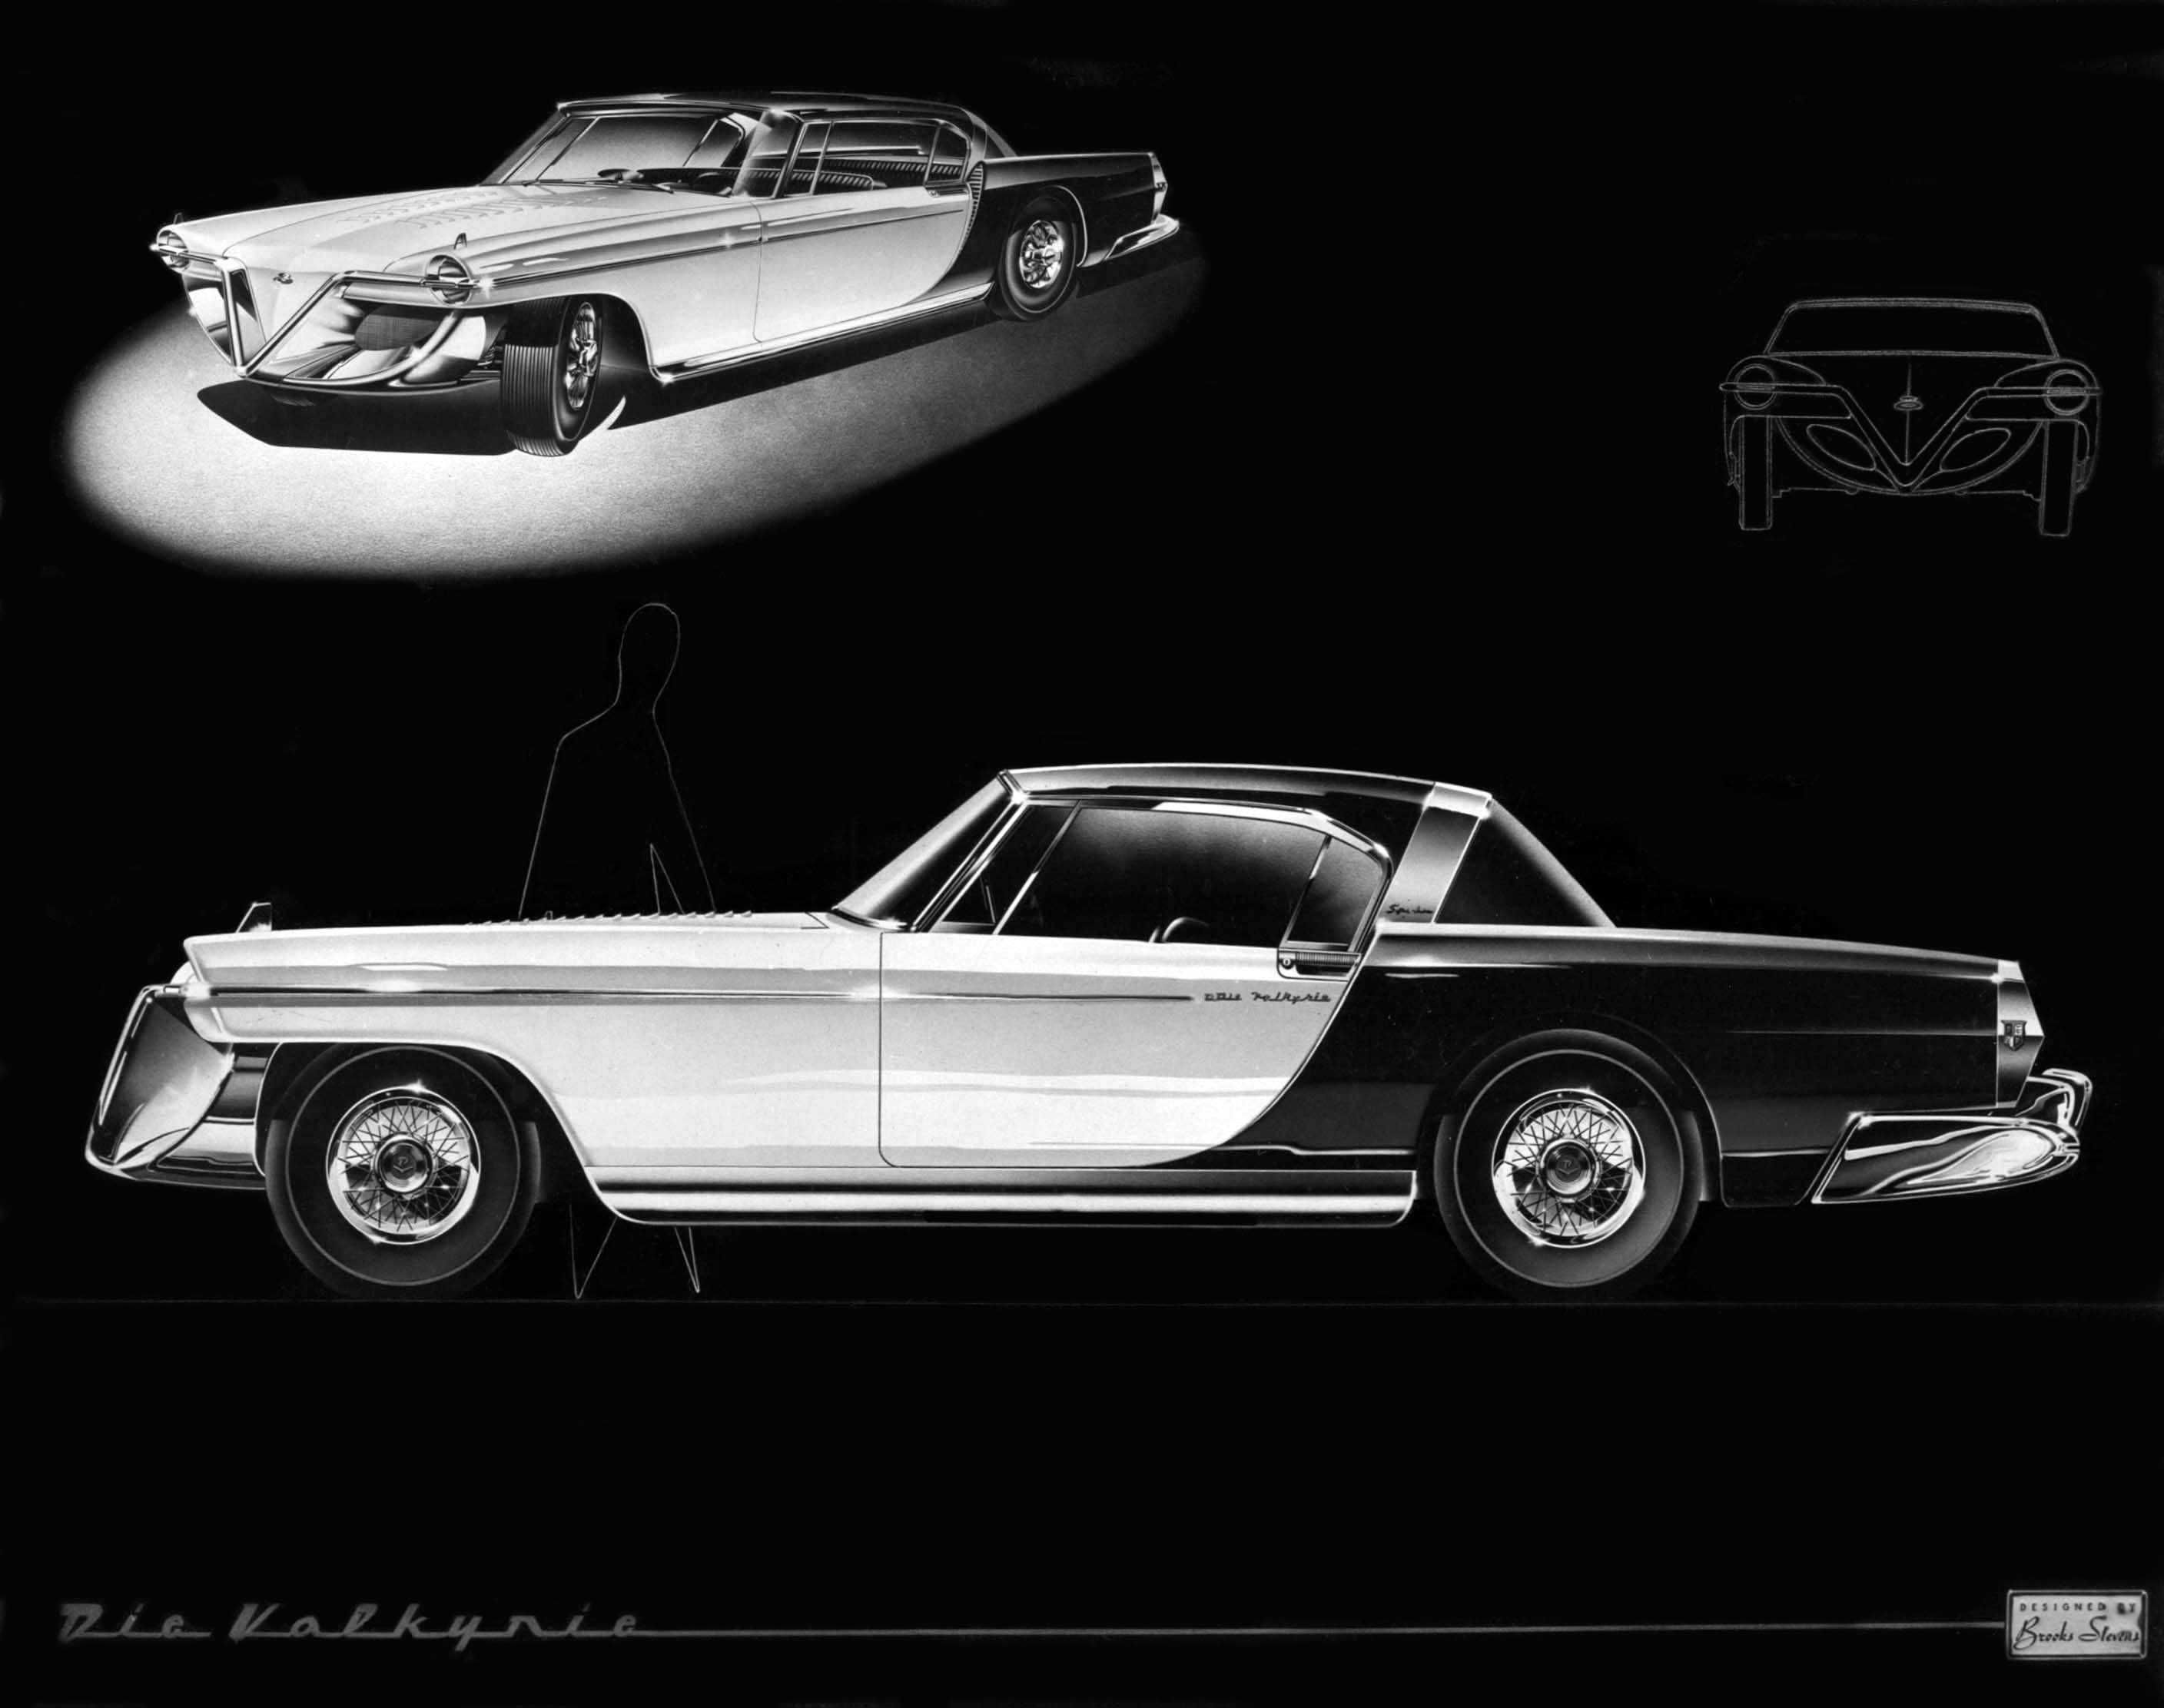 Cadillac Quot Die Valkyrie Quot Designed By Brooks Stevens 1954